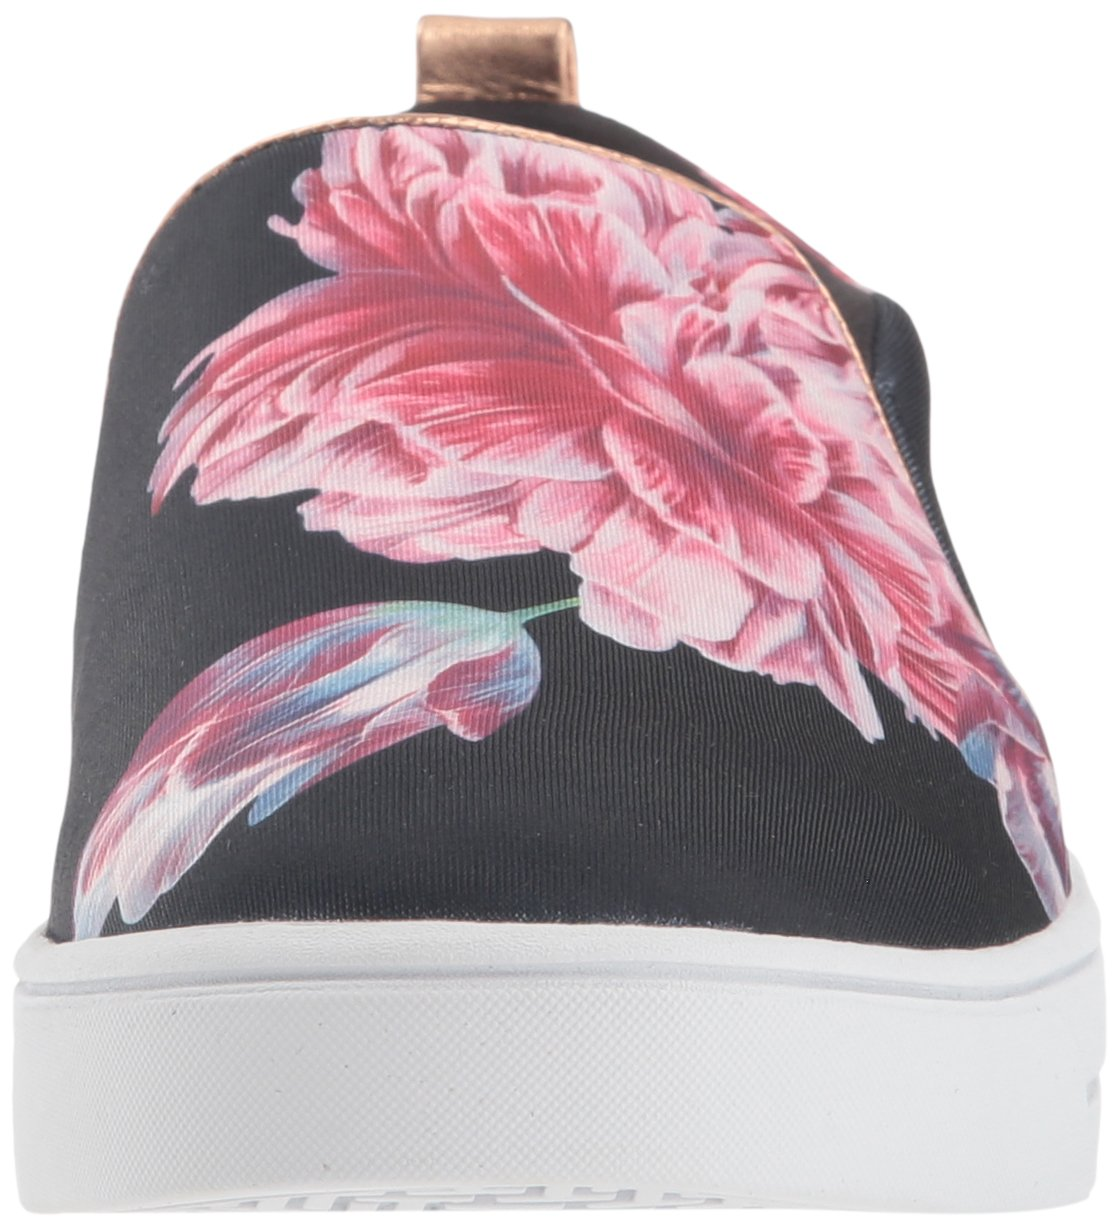 Ted Baker Women's Tancey Sneaker B077NQY8XN 9 M US|Tranquility Print Textile